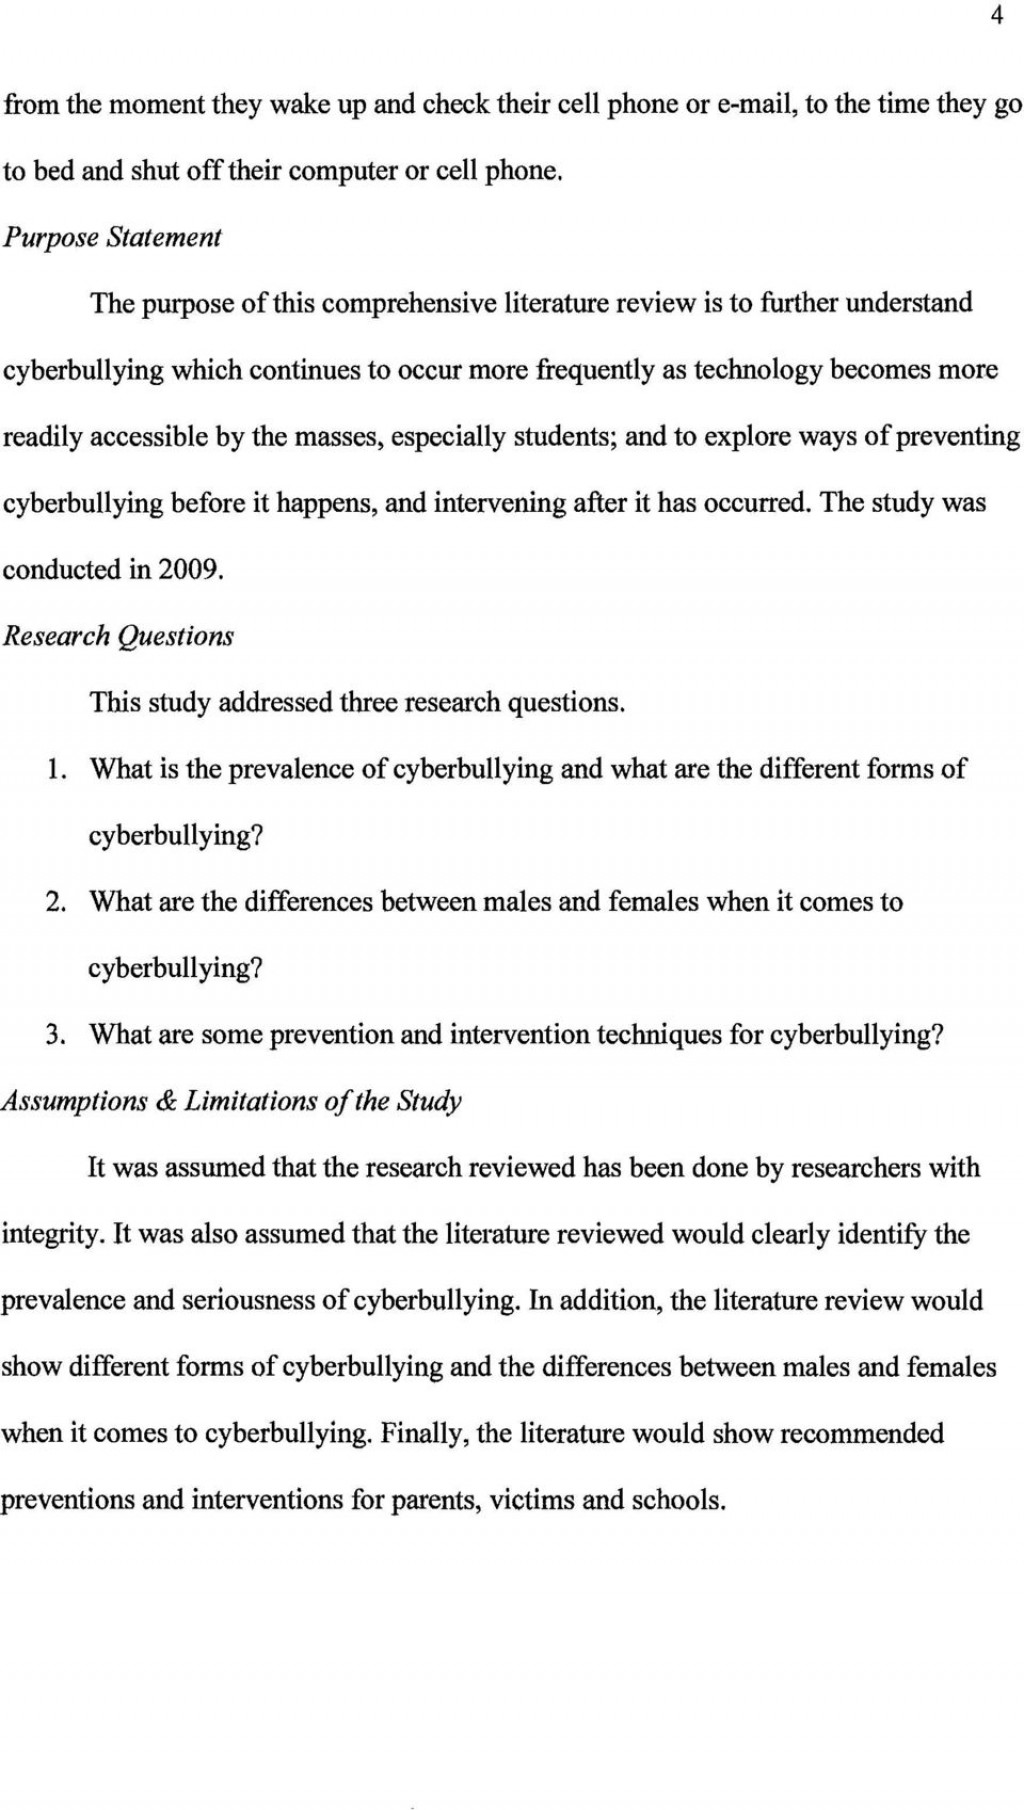 004 Cyberbullying Research Questions Paper Page 8 Awful Topic Large